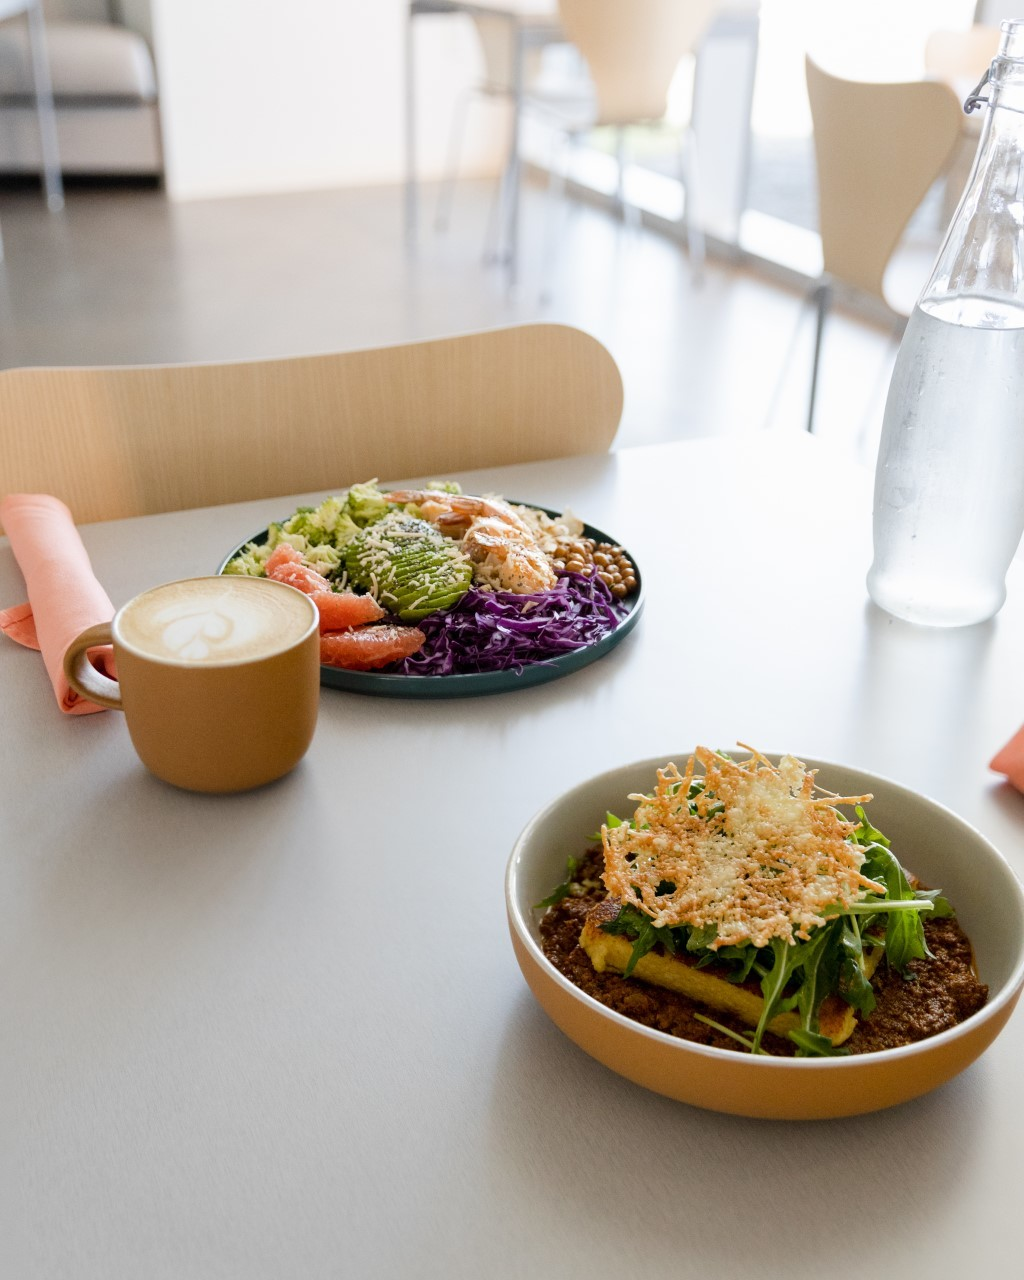 Two meals and a latte served on a white table